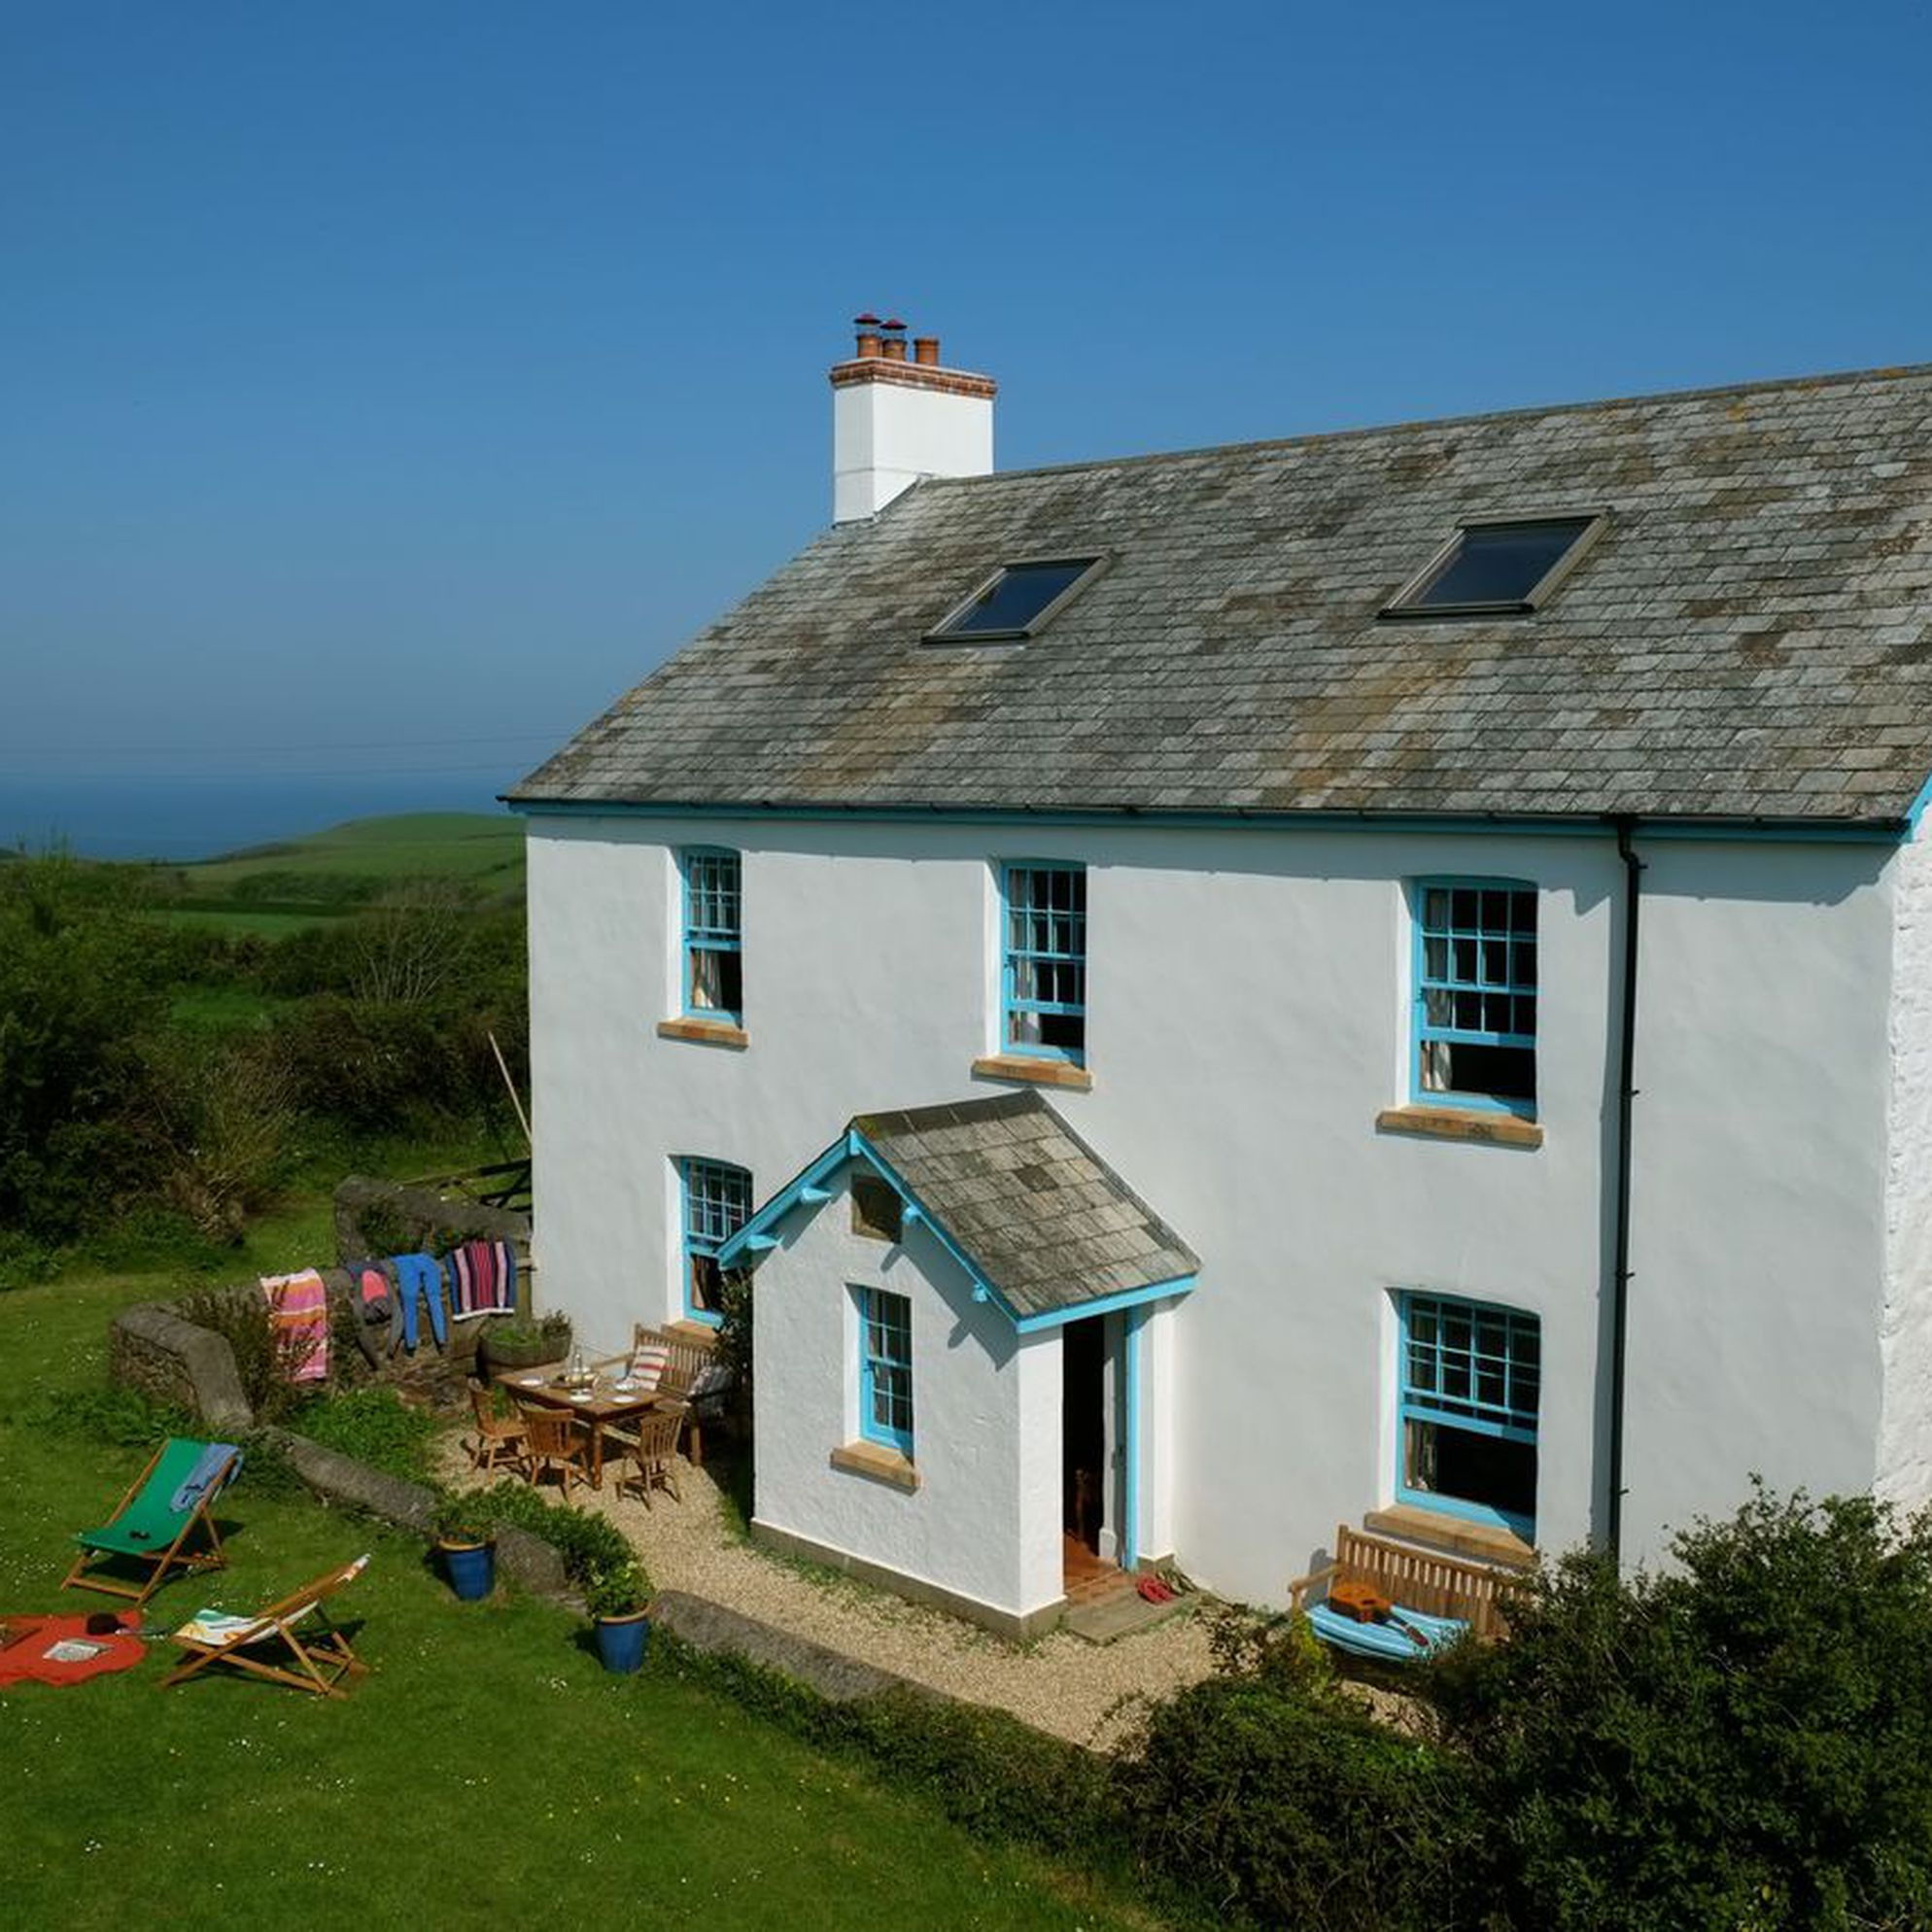 Family-friendly large holiday cottages